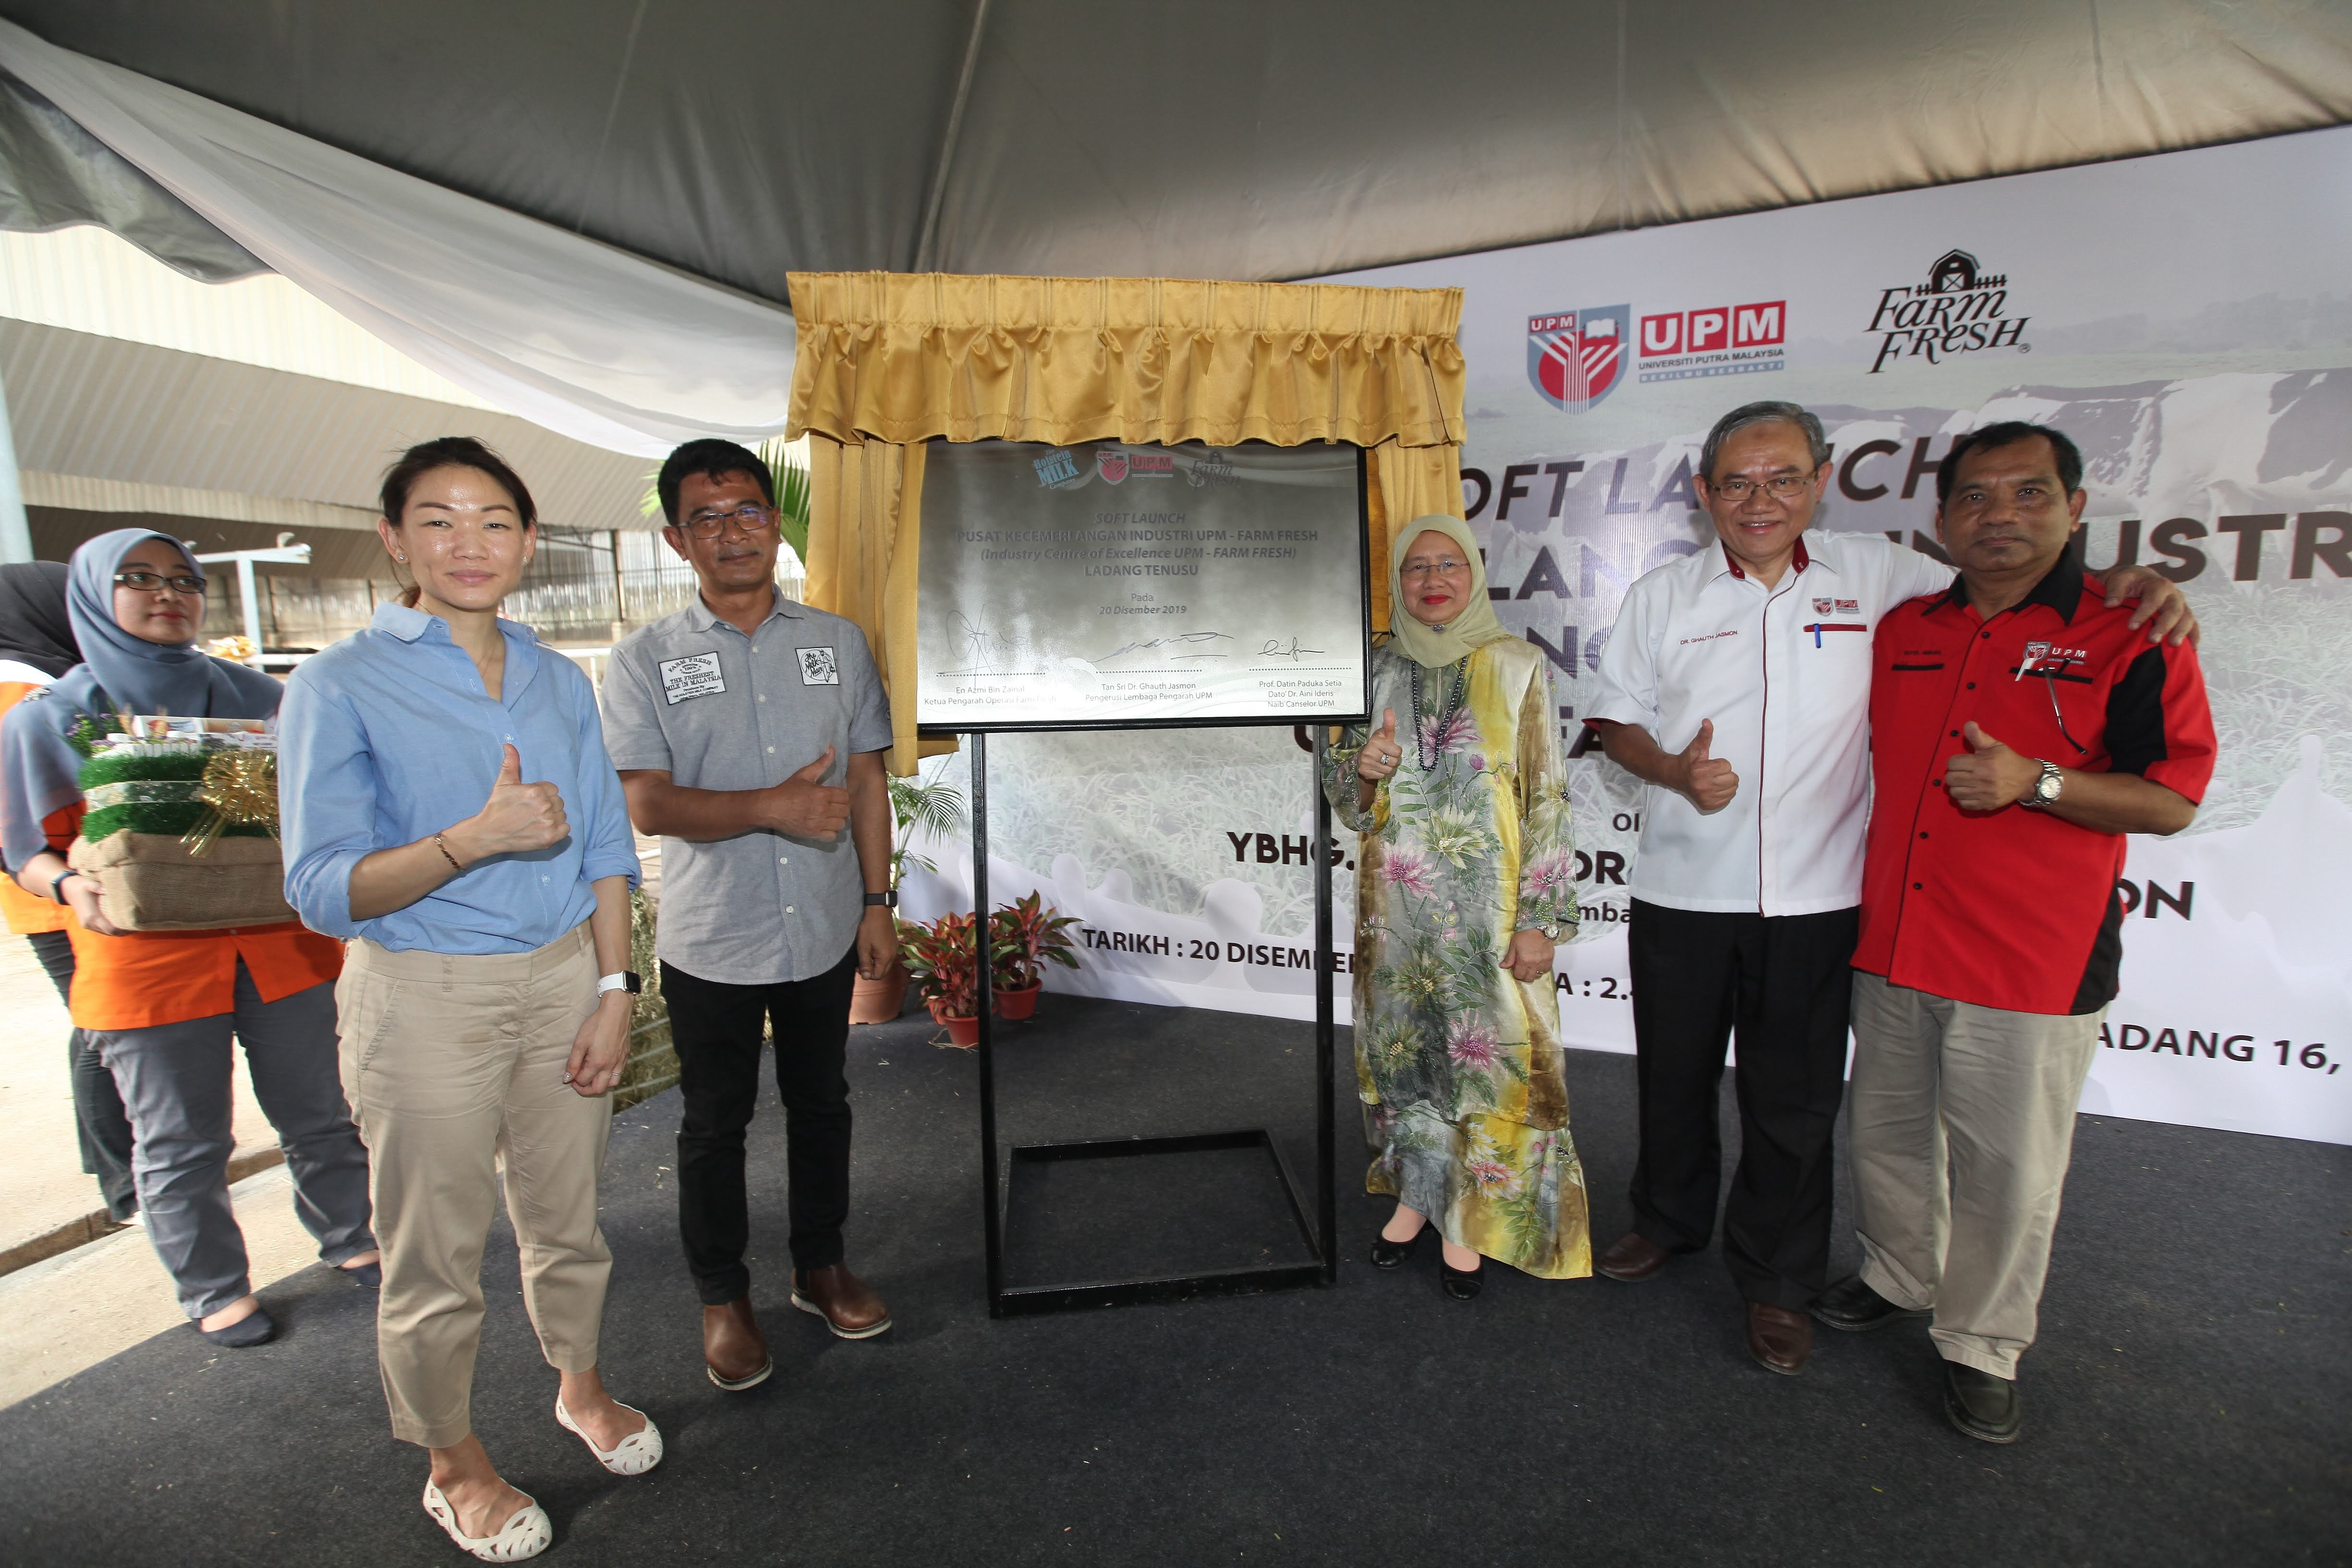 UPM-Farm Fresh establishes an Industry Centre of Excellence (ICOE) for dairy farming